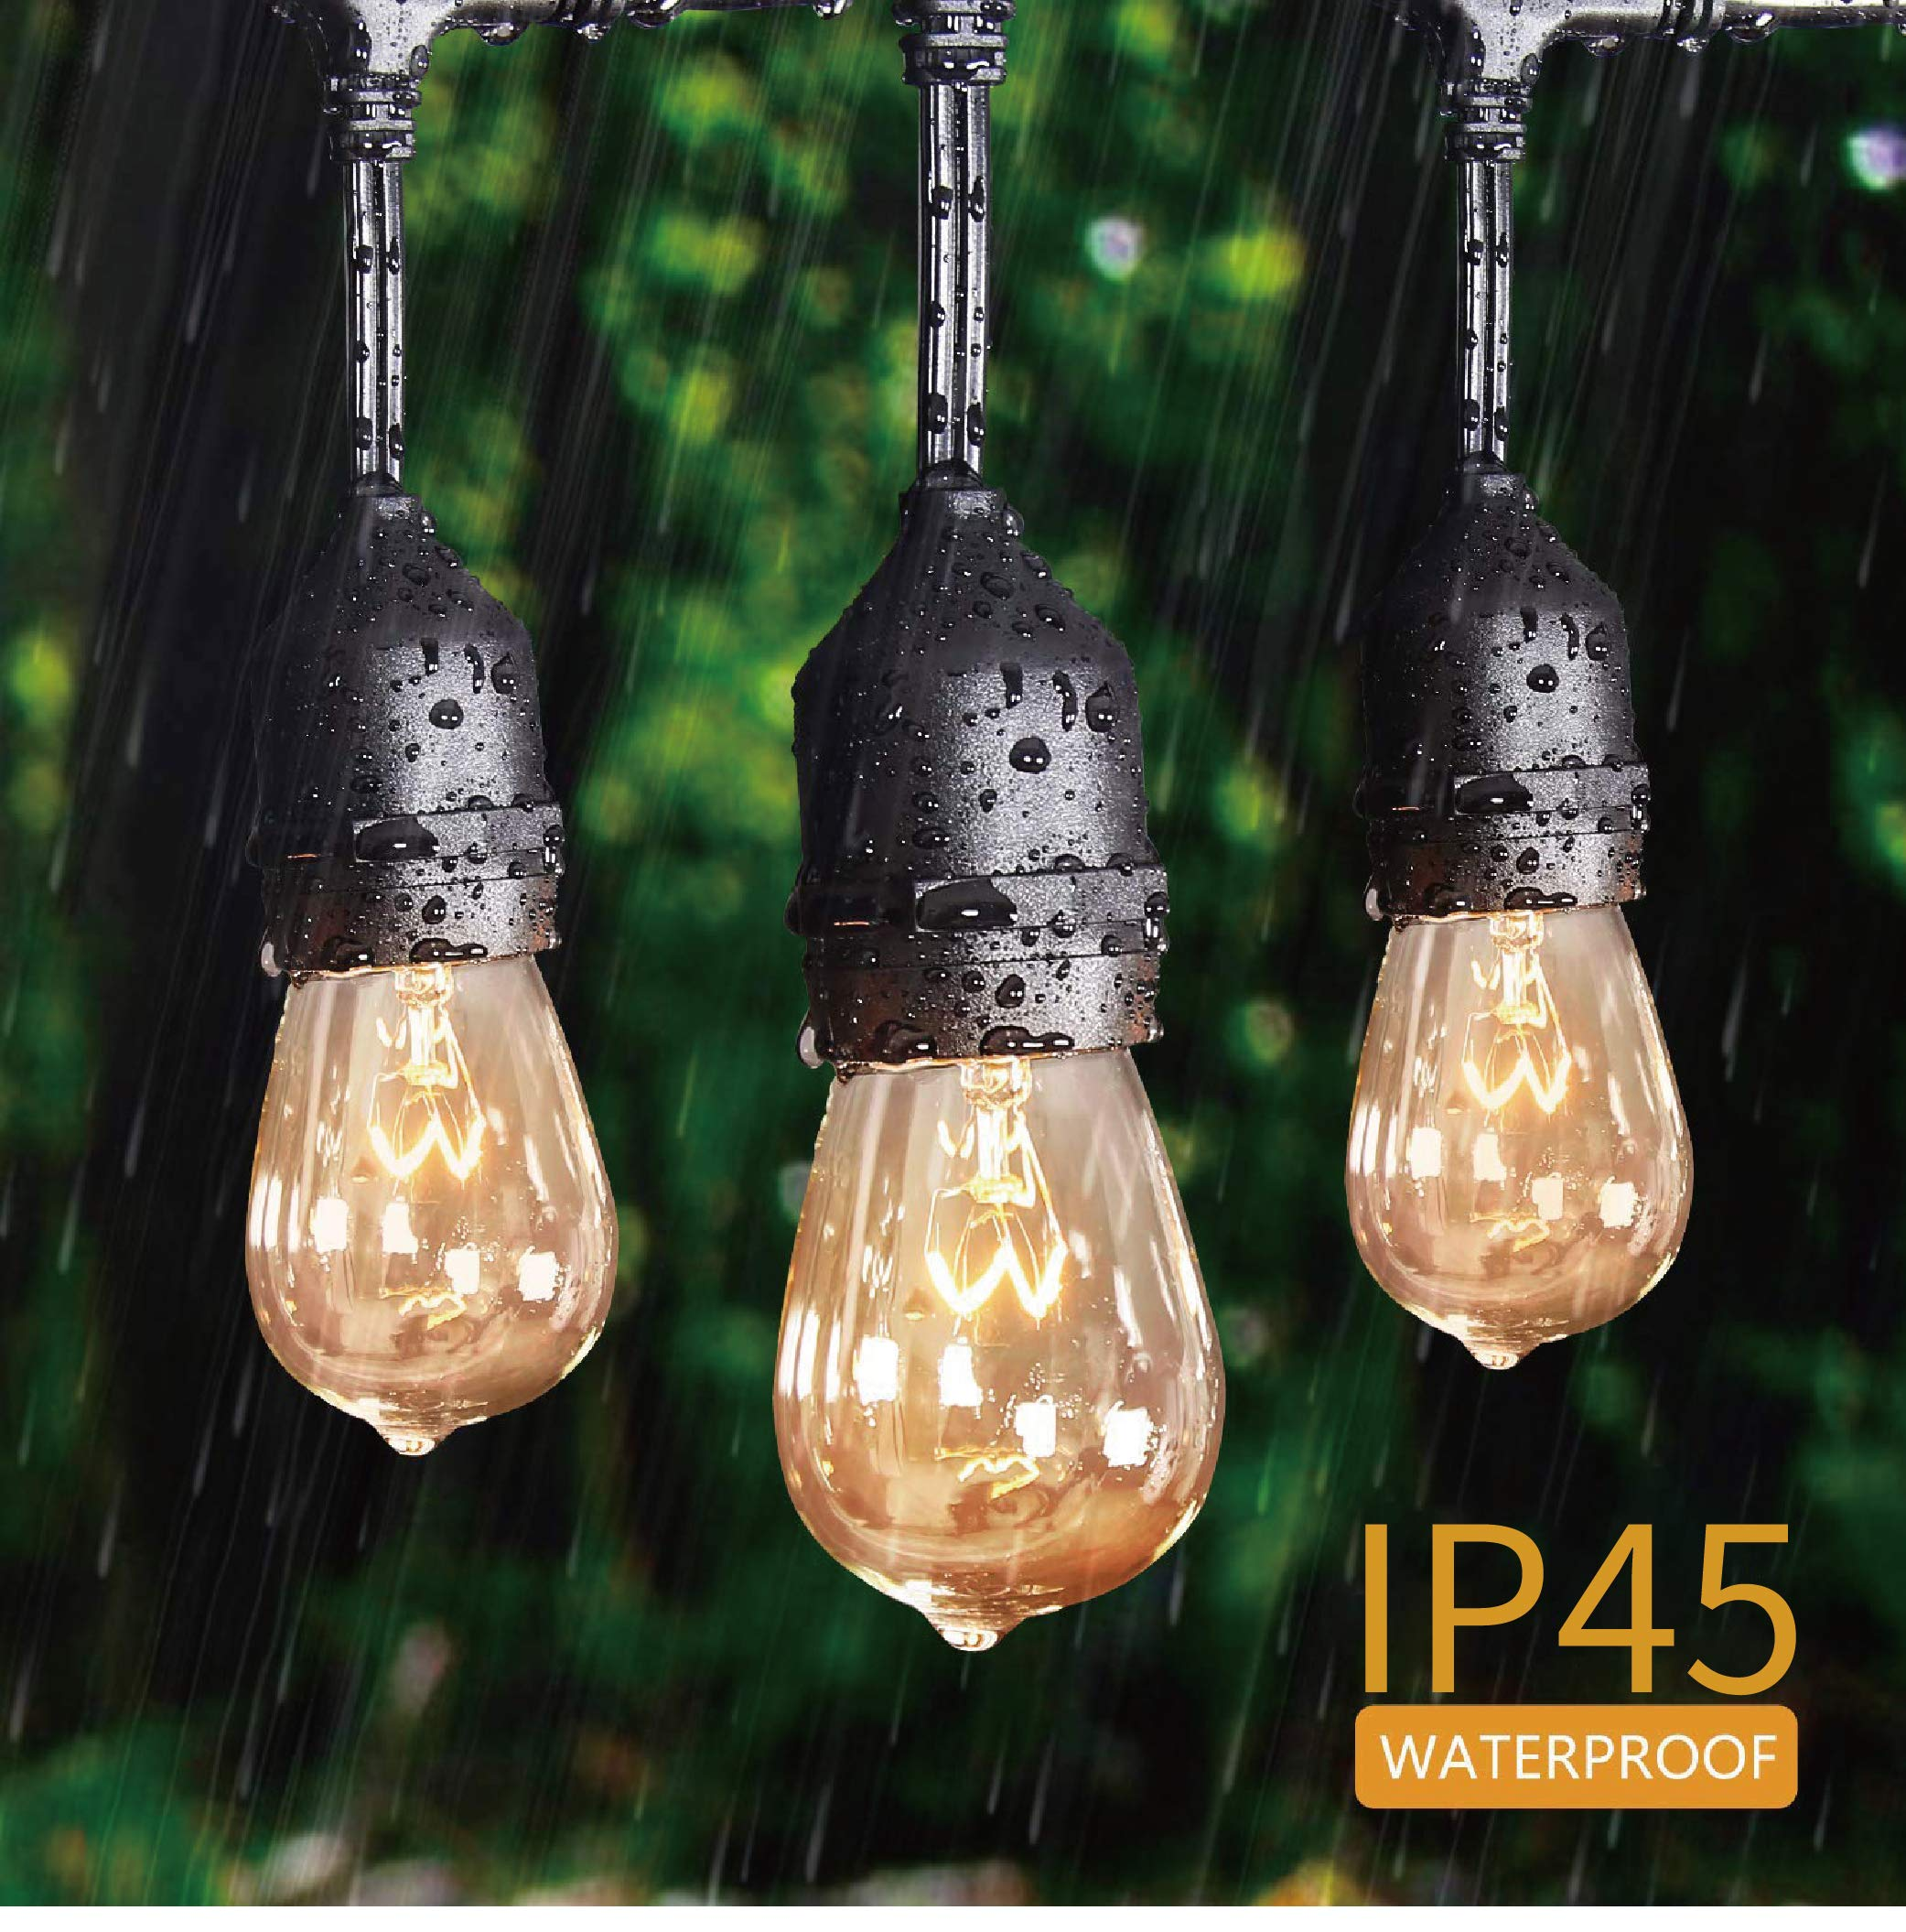 KMC 50 FT Waterproof Outdoor String Lights, 16/3 Heavy Duty Power Cord with 15 x E26 Sockets and Hanging Loops, 18 x 11 Watt S14 Dimmable Incandescent Bulbs Included (3 Spares), Perfect Patio Lights by KMC (Image #4)